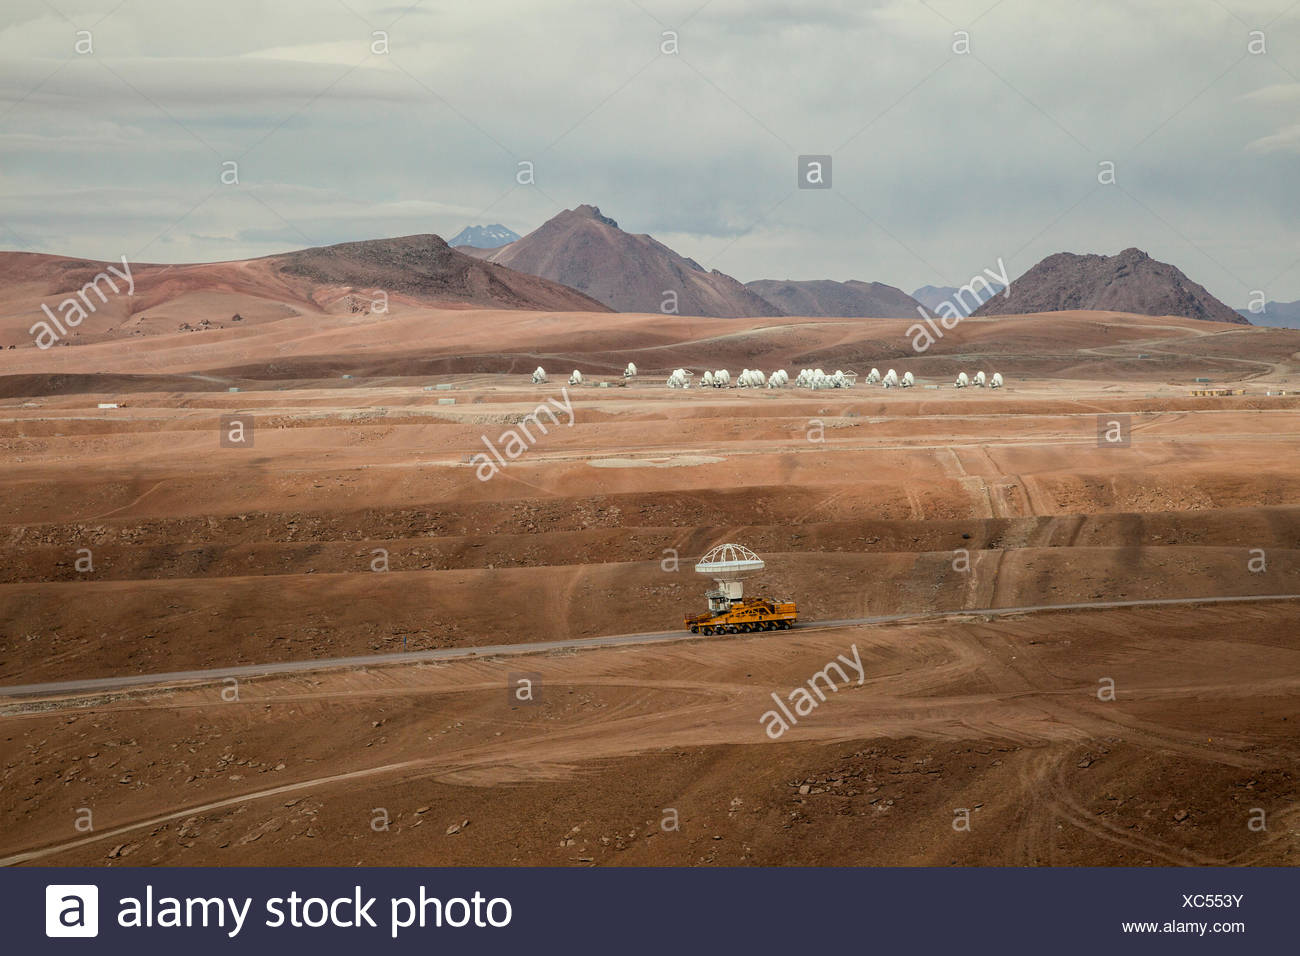 An antenna is delivered to the Atacama Large Millimeter/submillimeter Array, ALMA, site. - Stock Image